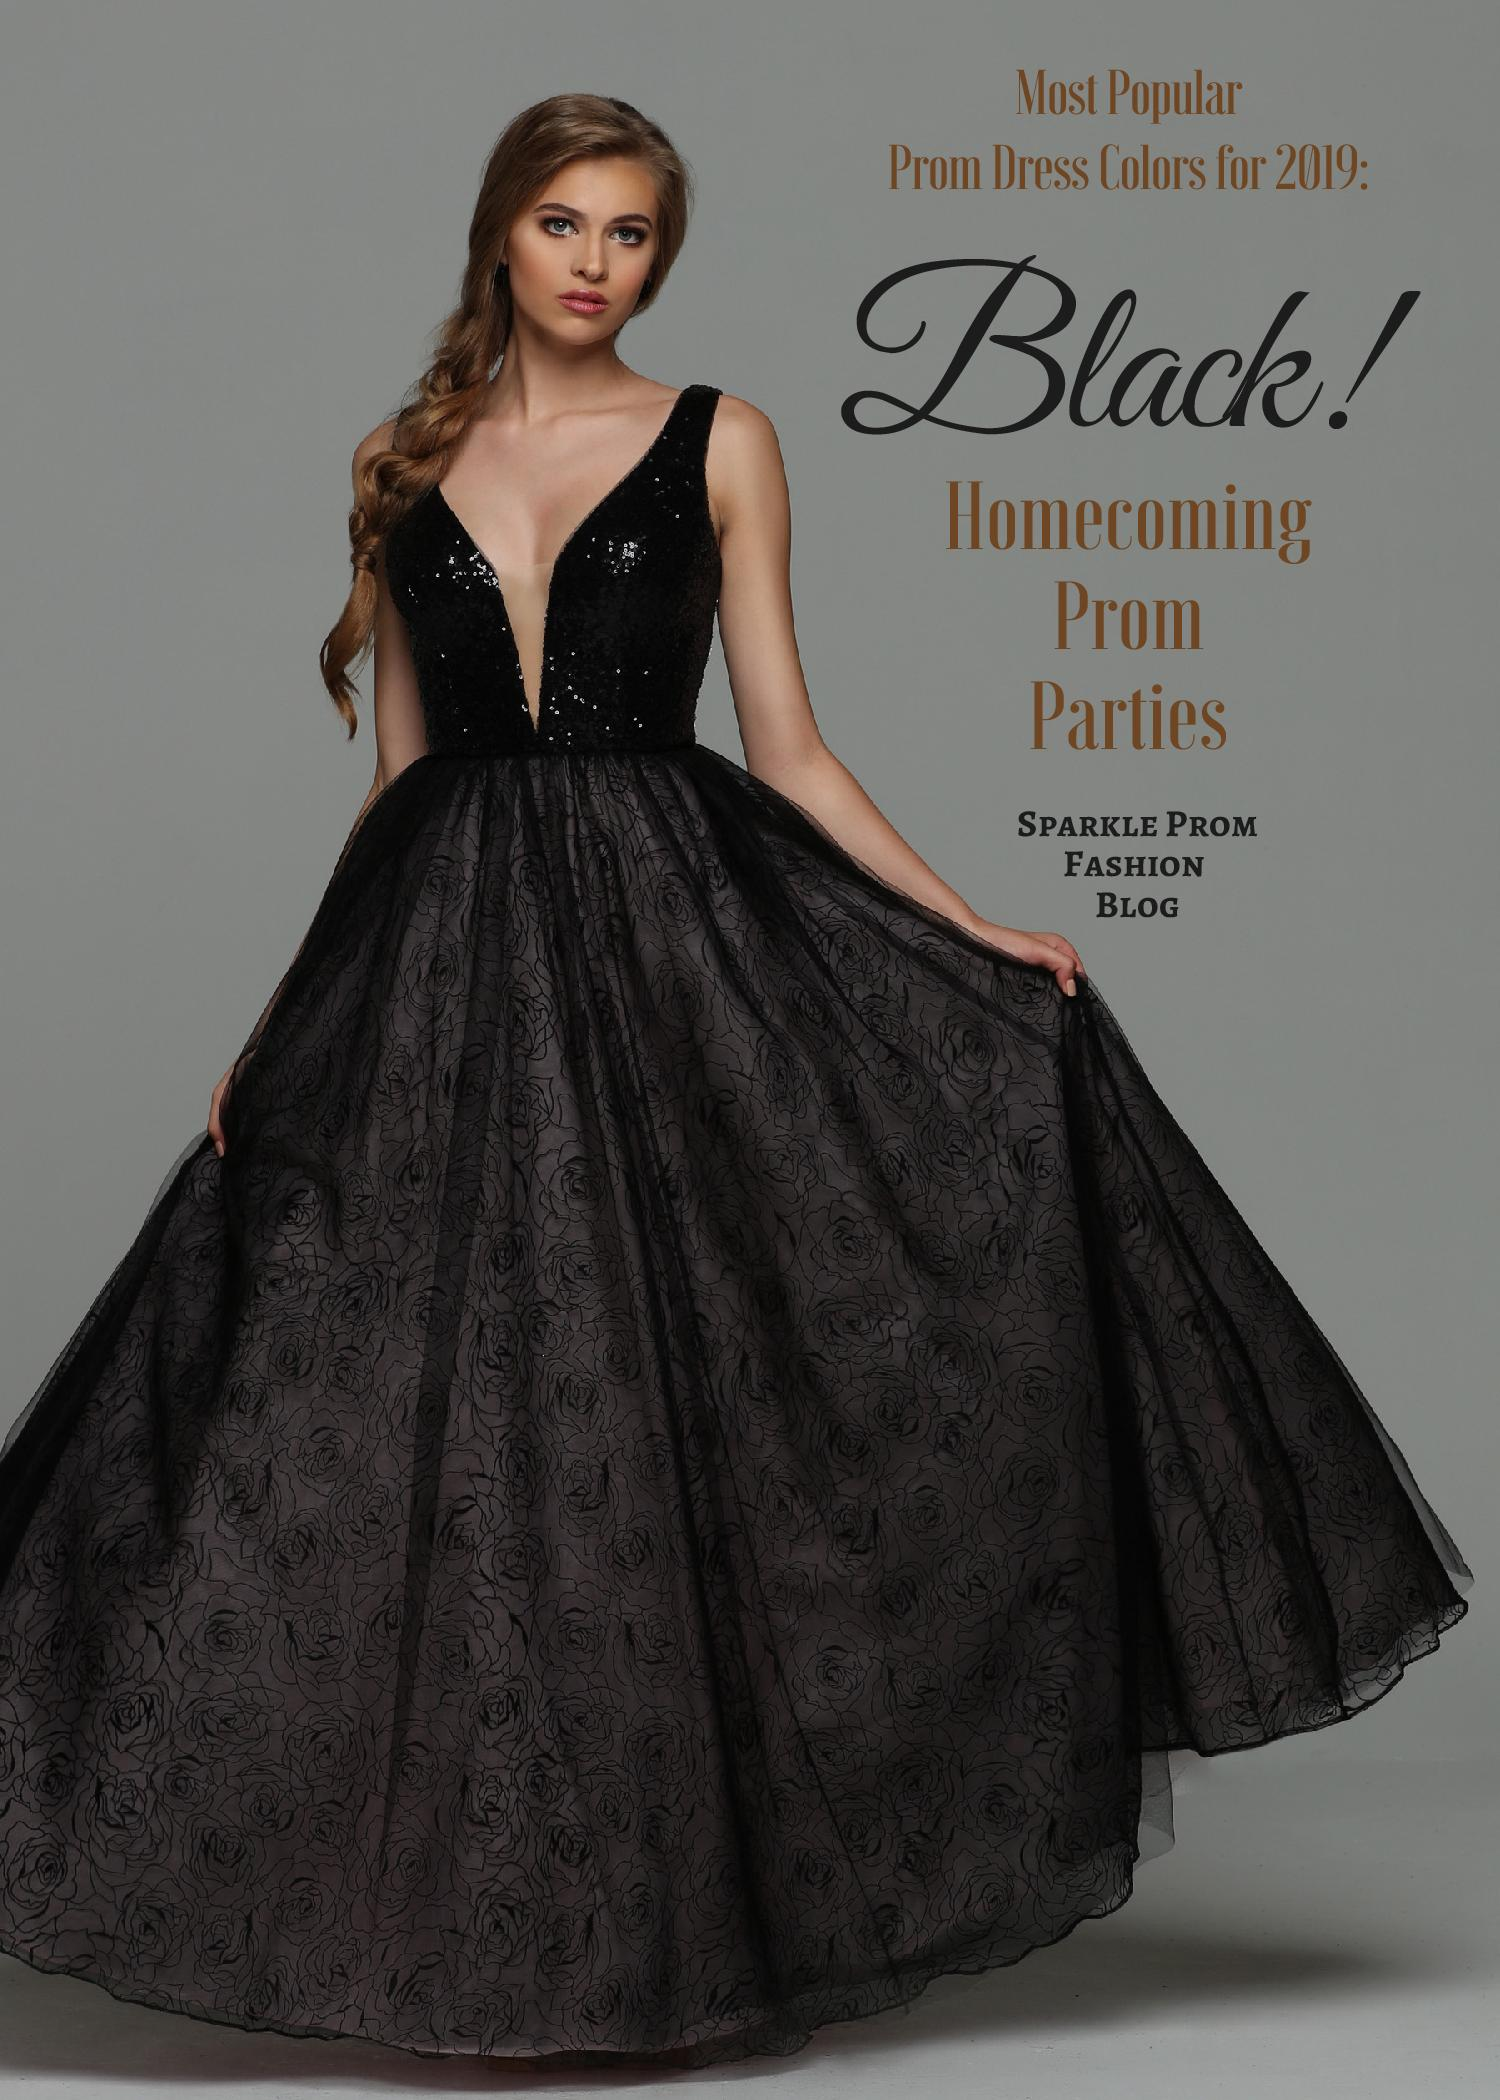 Most Popular Prom Dress Colors for 2019 Black Prom Dresses – Sparkle Prom Fashion Blog